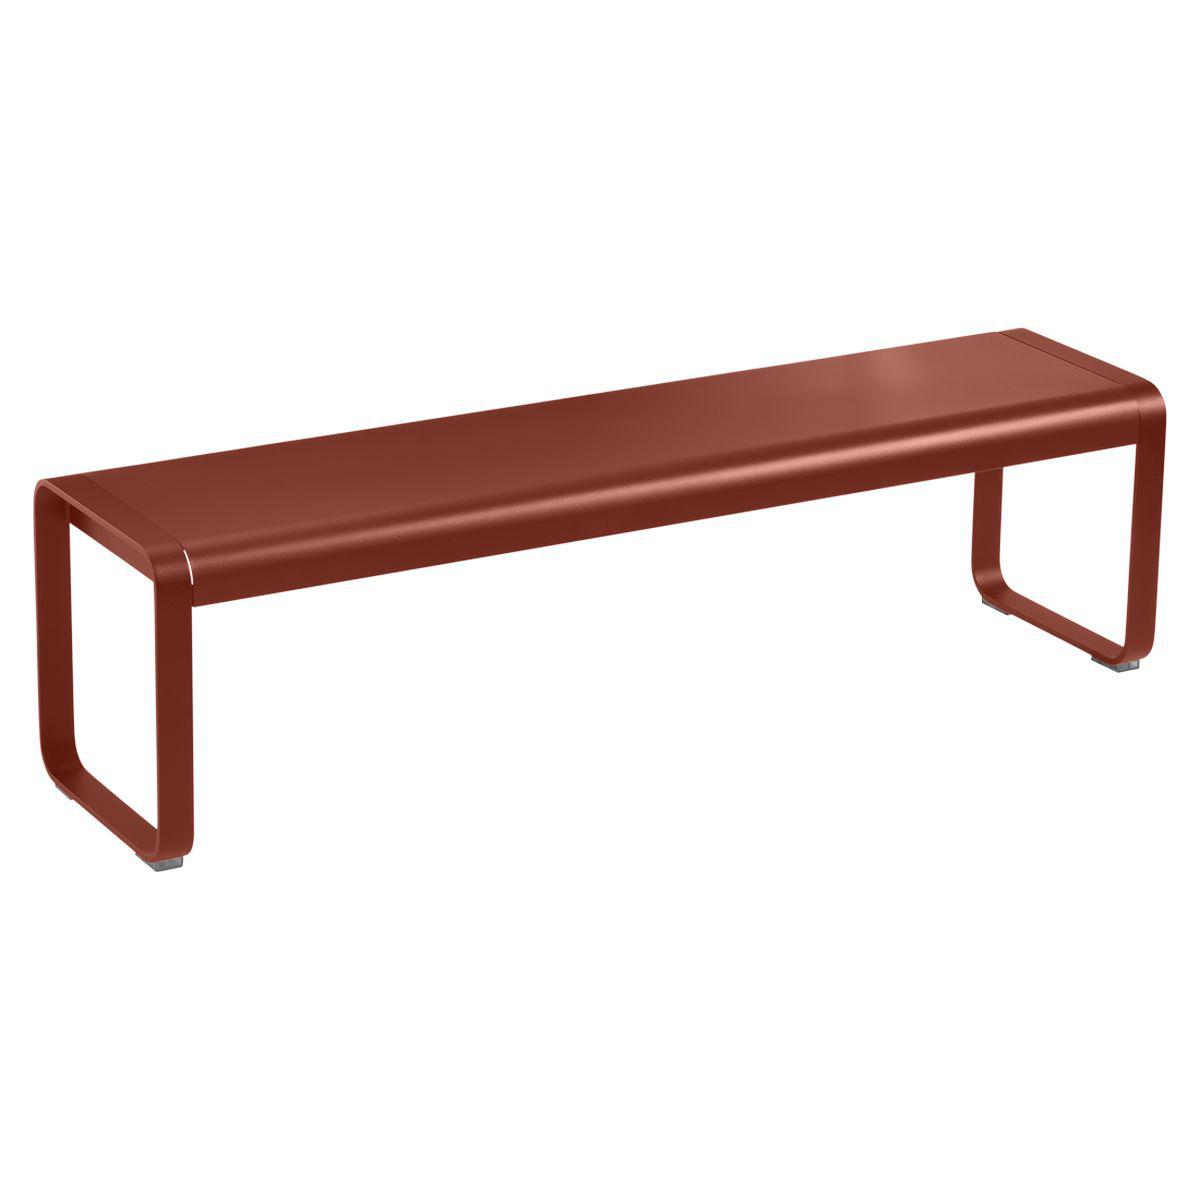 Banc BELLEVIE Fermob rouge ocre